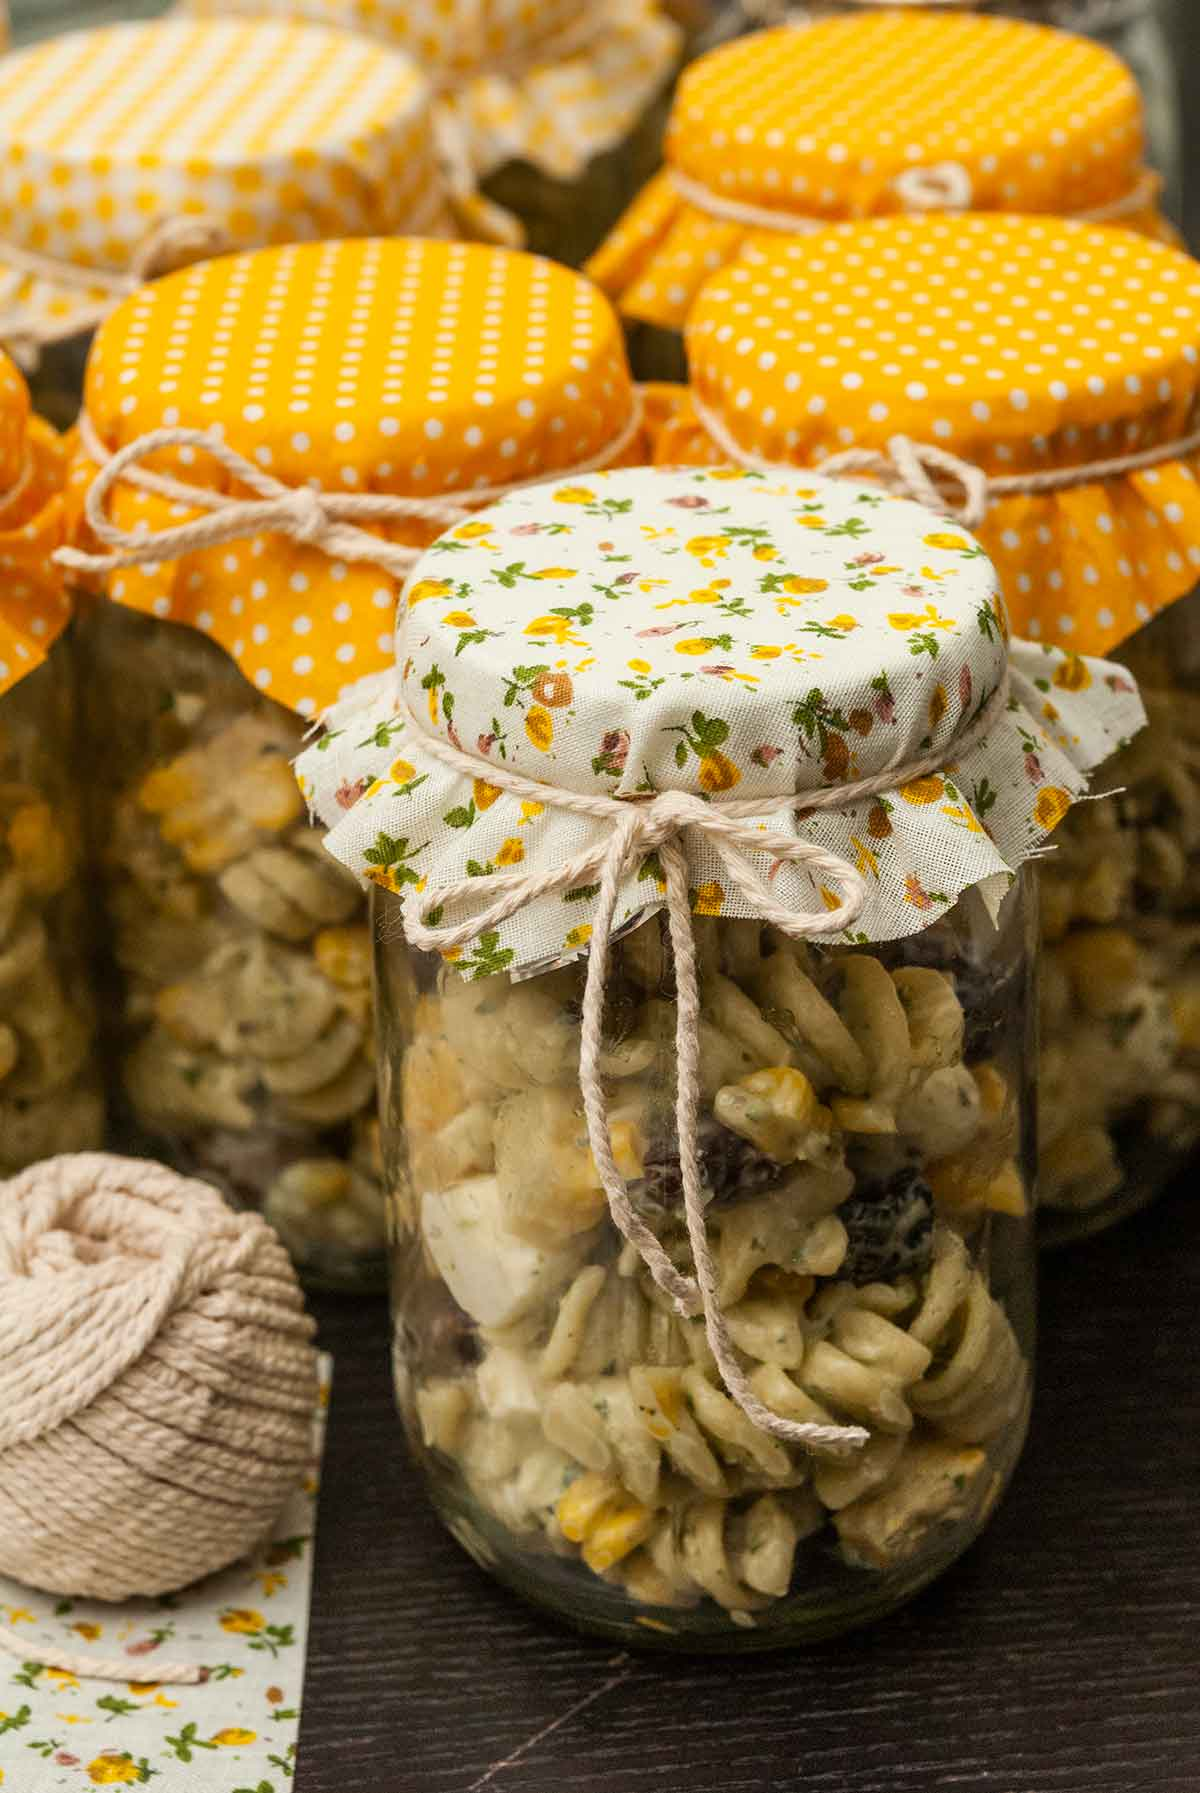 6 jars of pasta salad on a table, topped with fabric and tied with string.